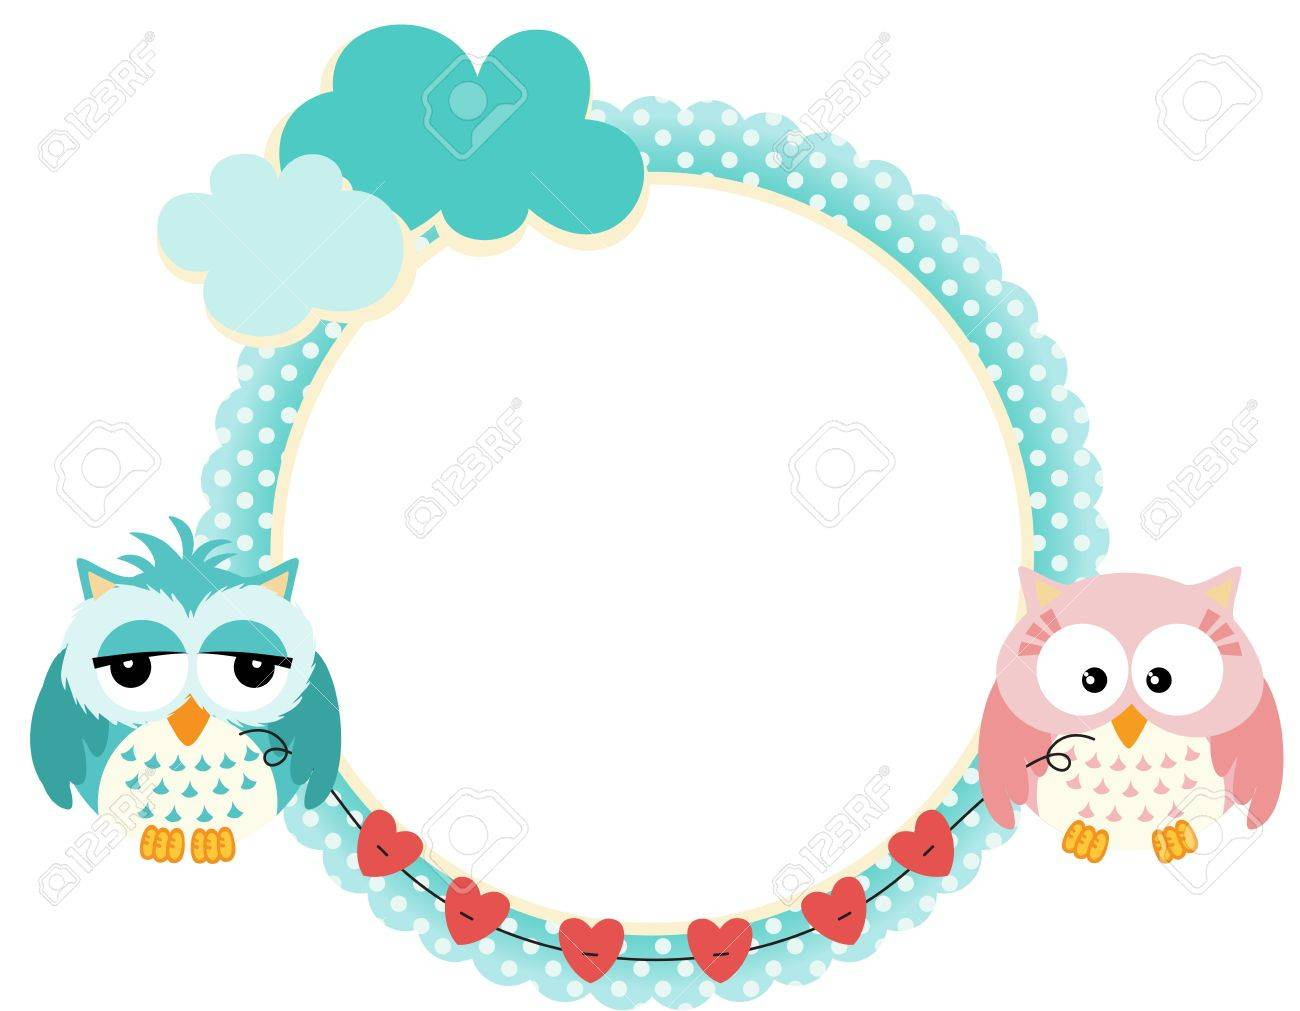 Cute photo frame clipart image library stock Cute frame clipart 8 » Clipart Station image library stock